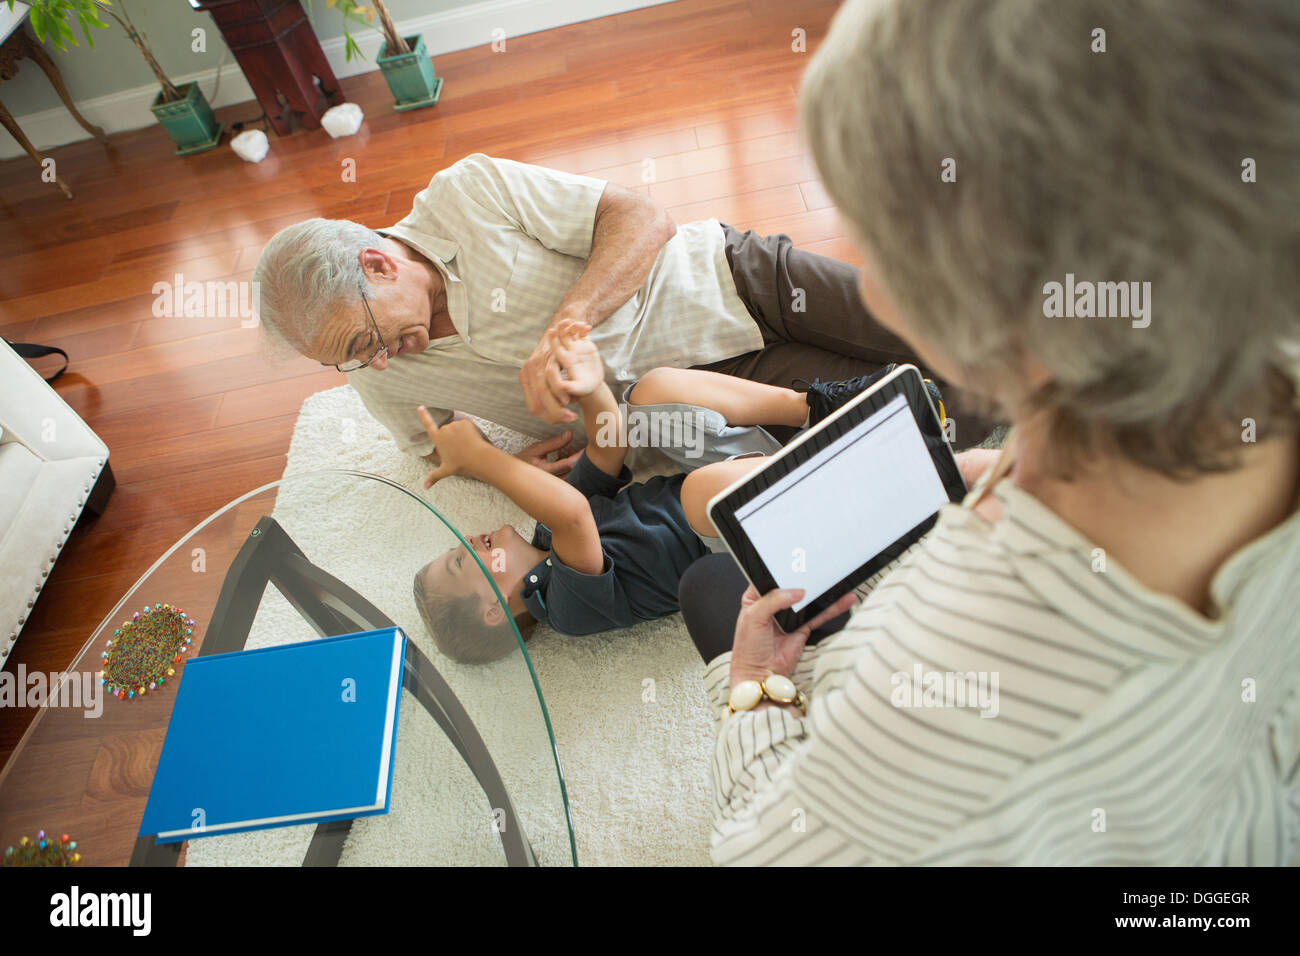 Senior man tickling grandson on rug - Stock Image